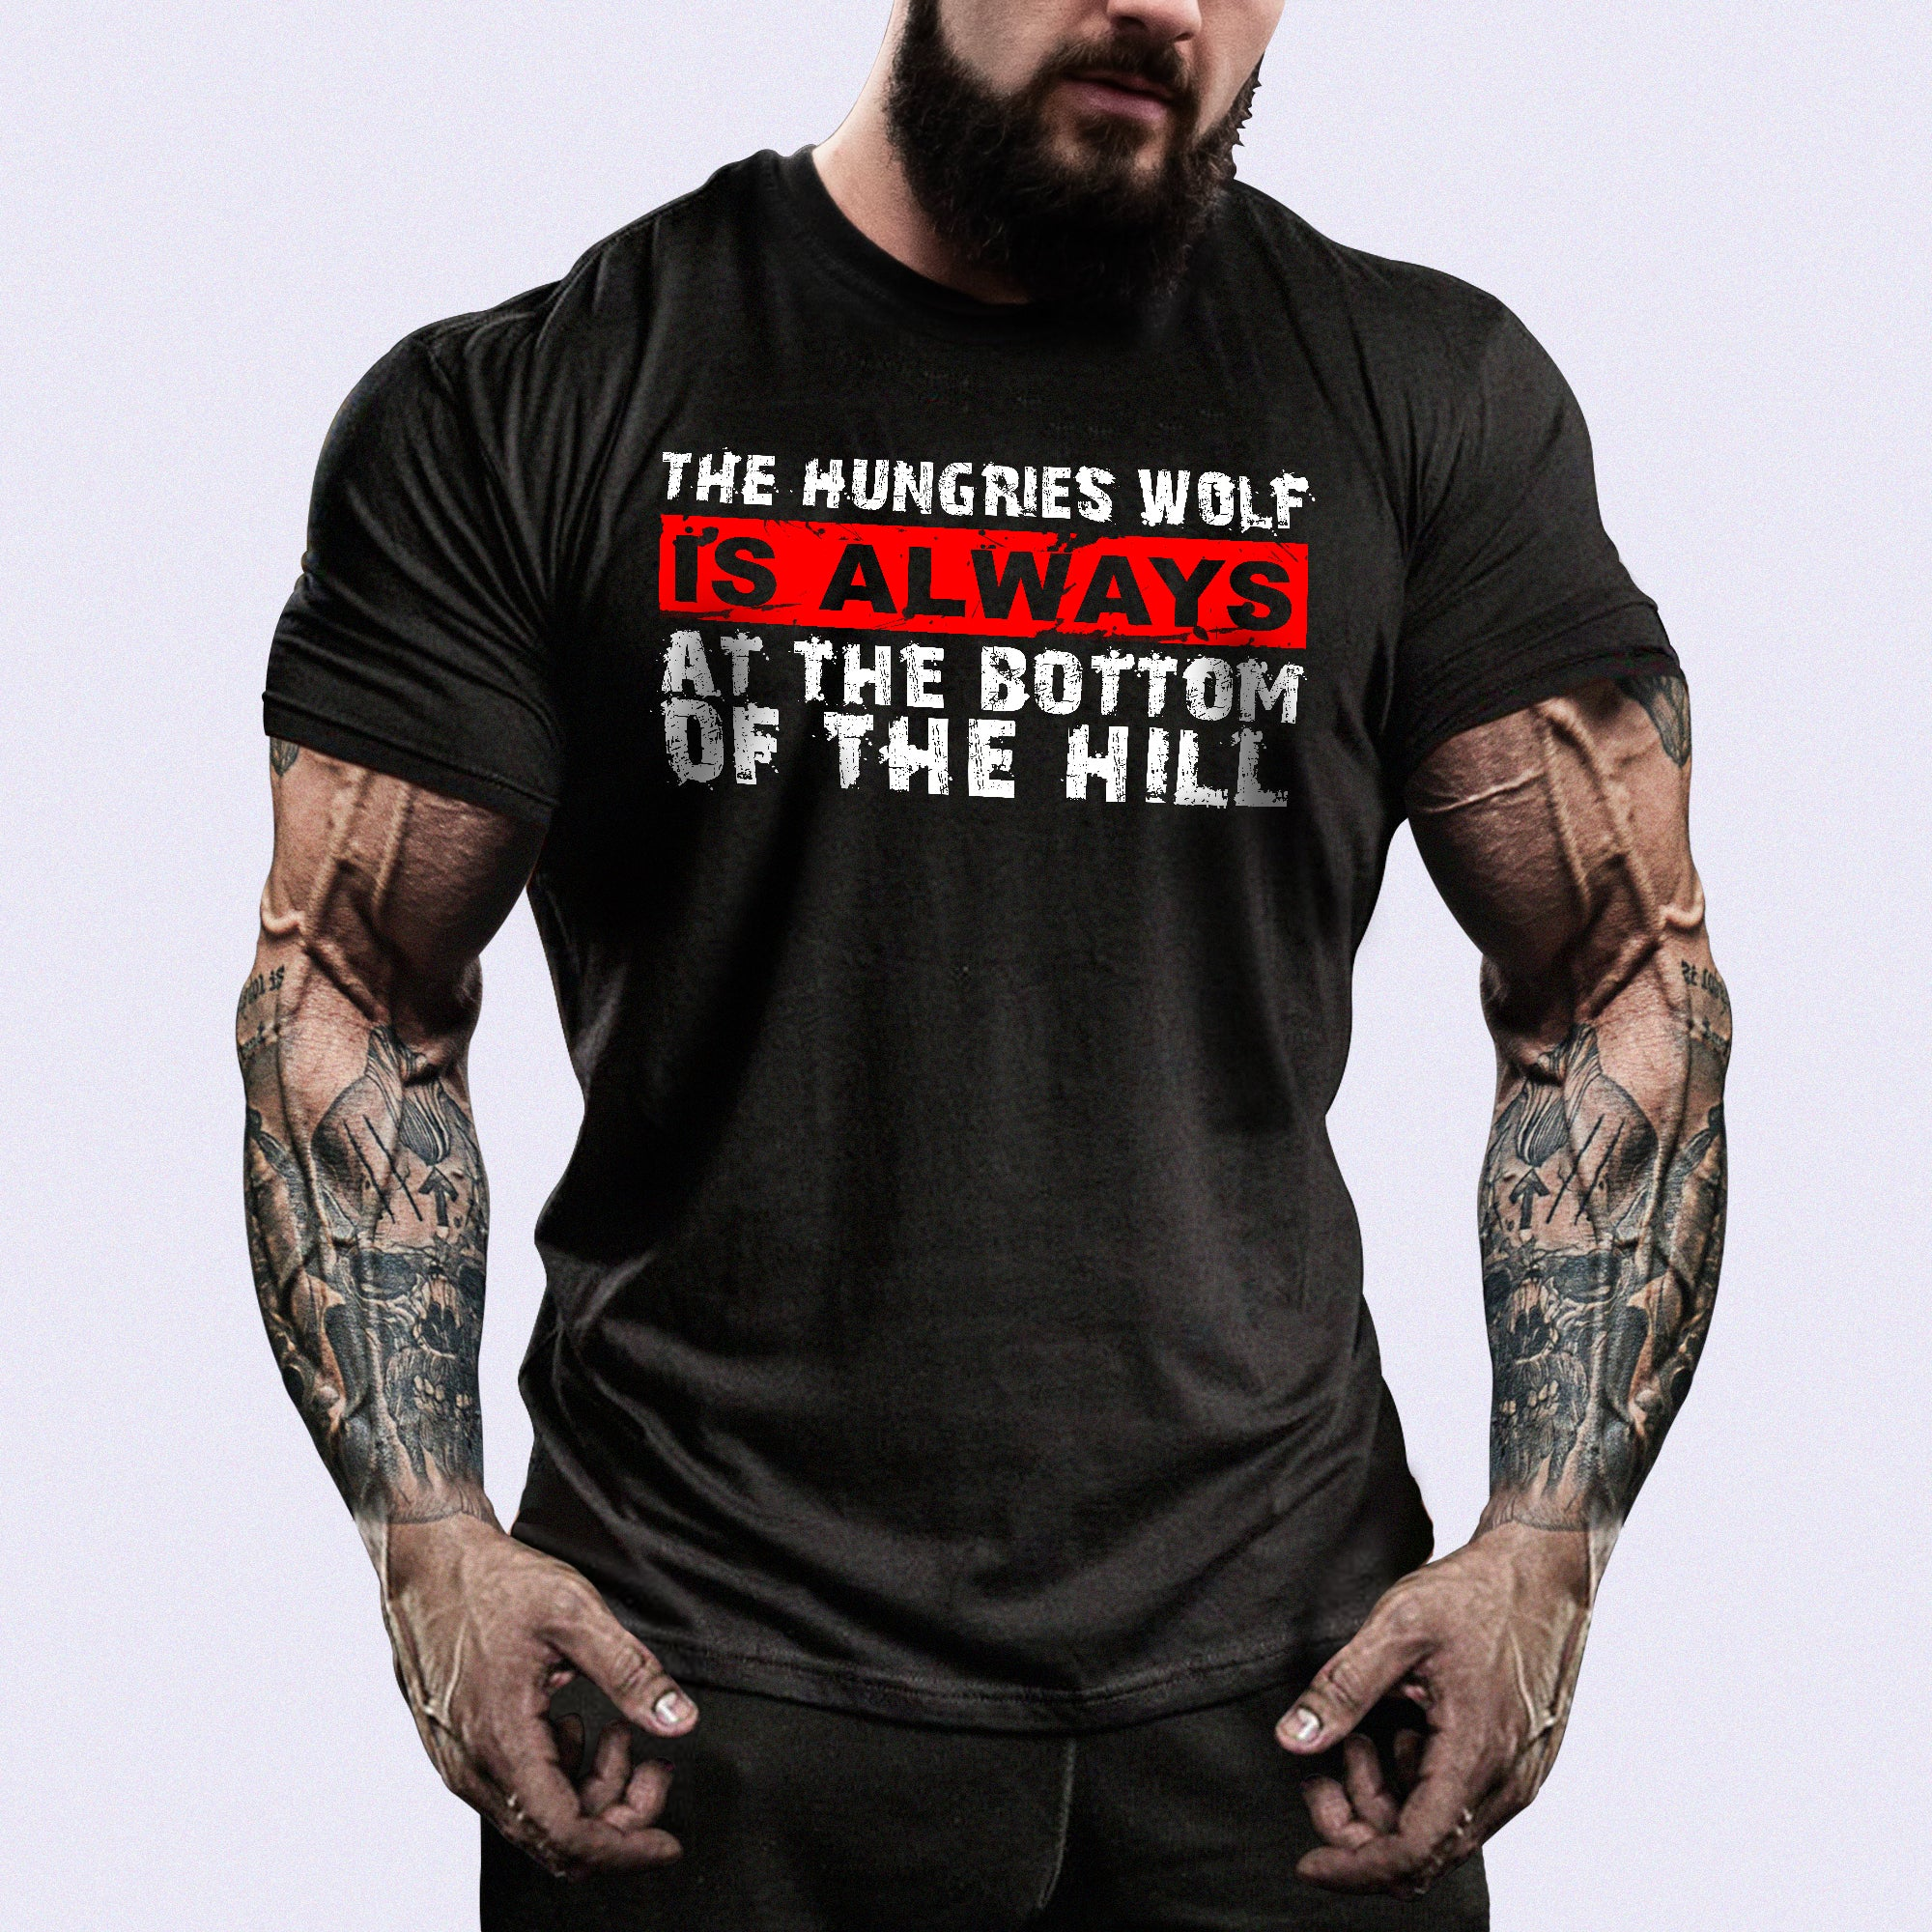 Hungries Wolf™ Shirt